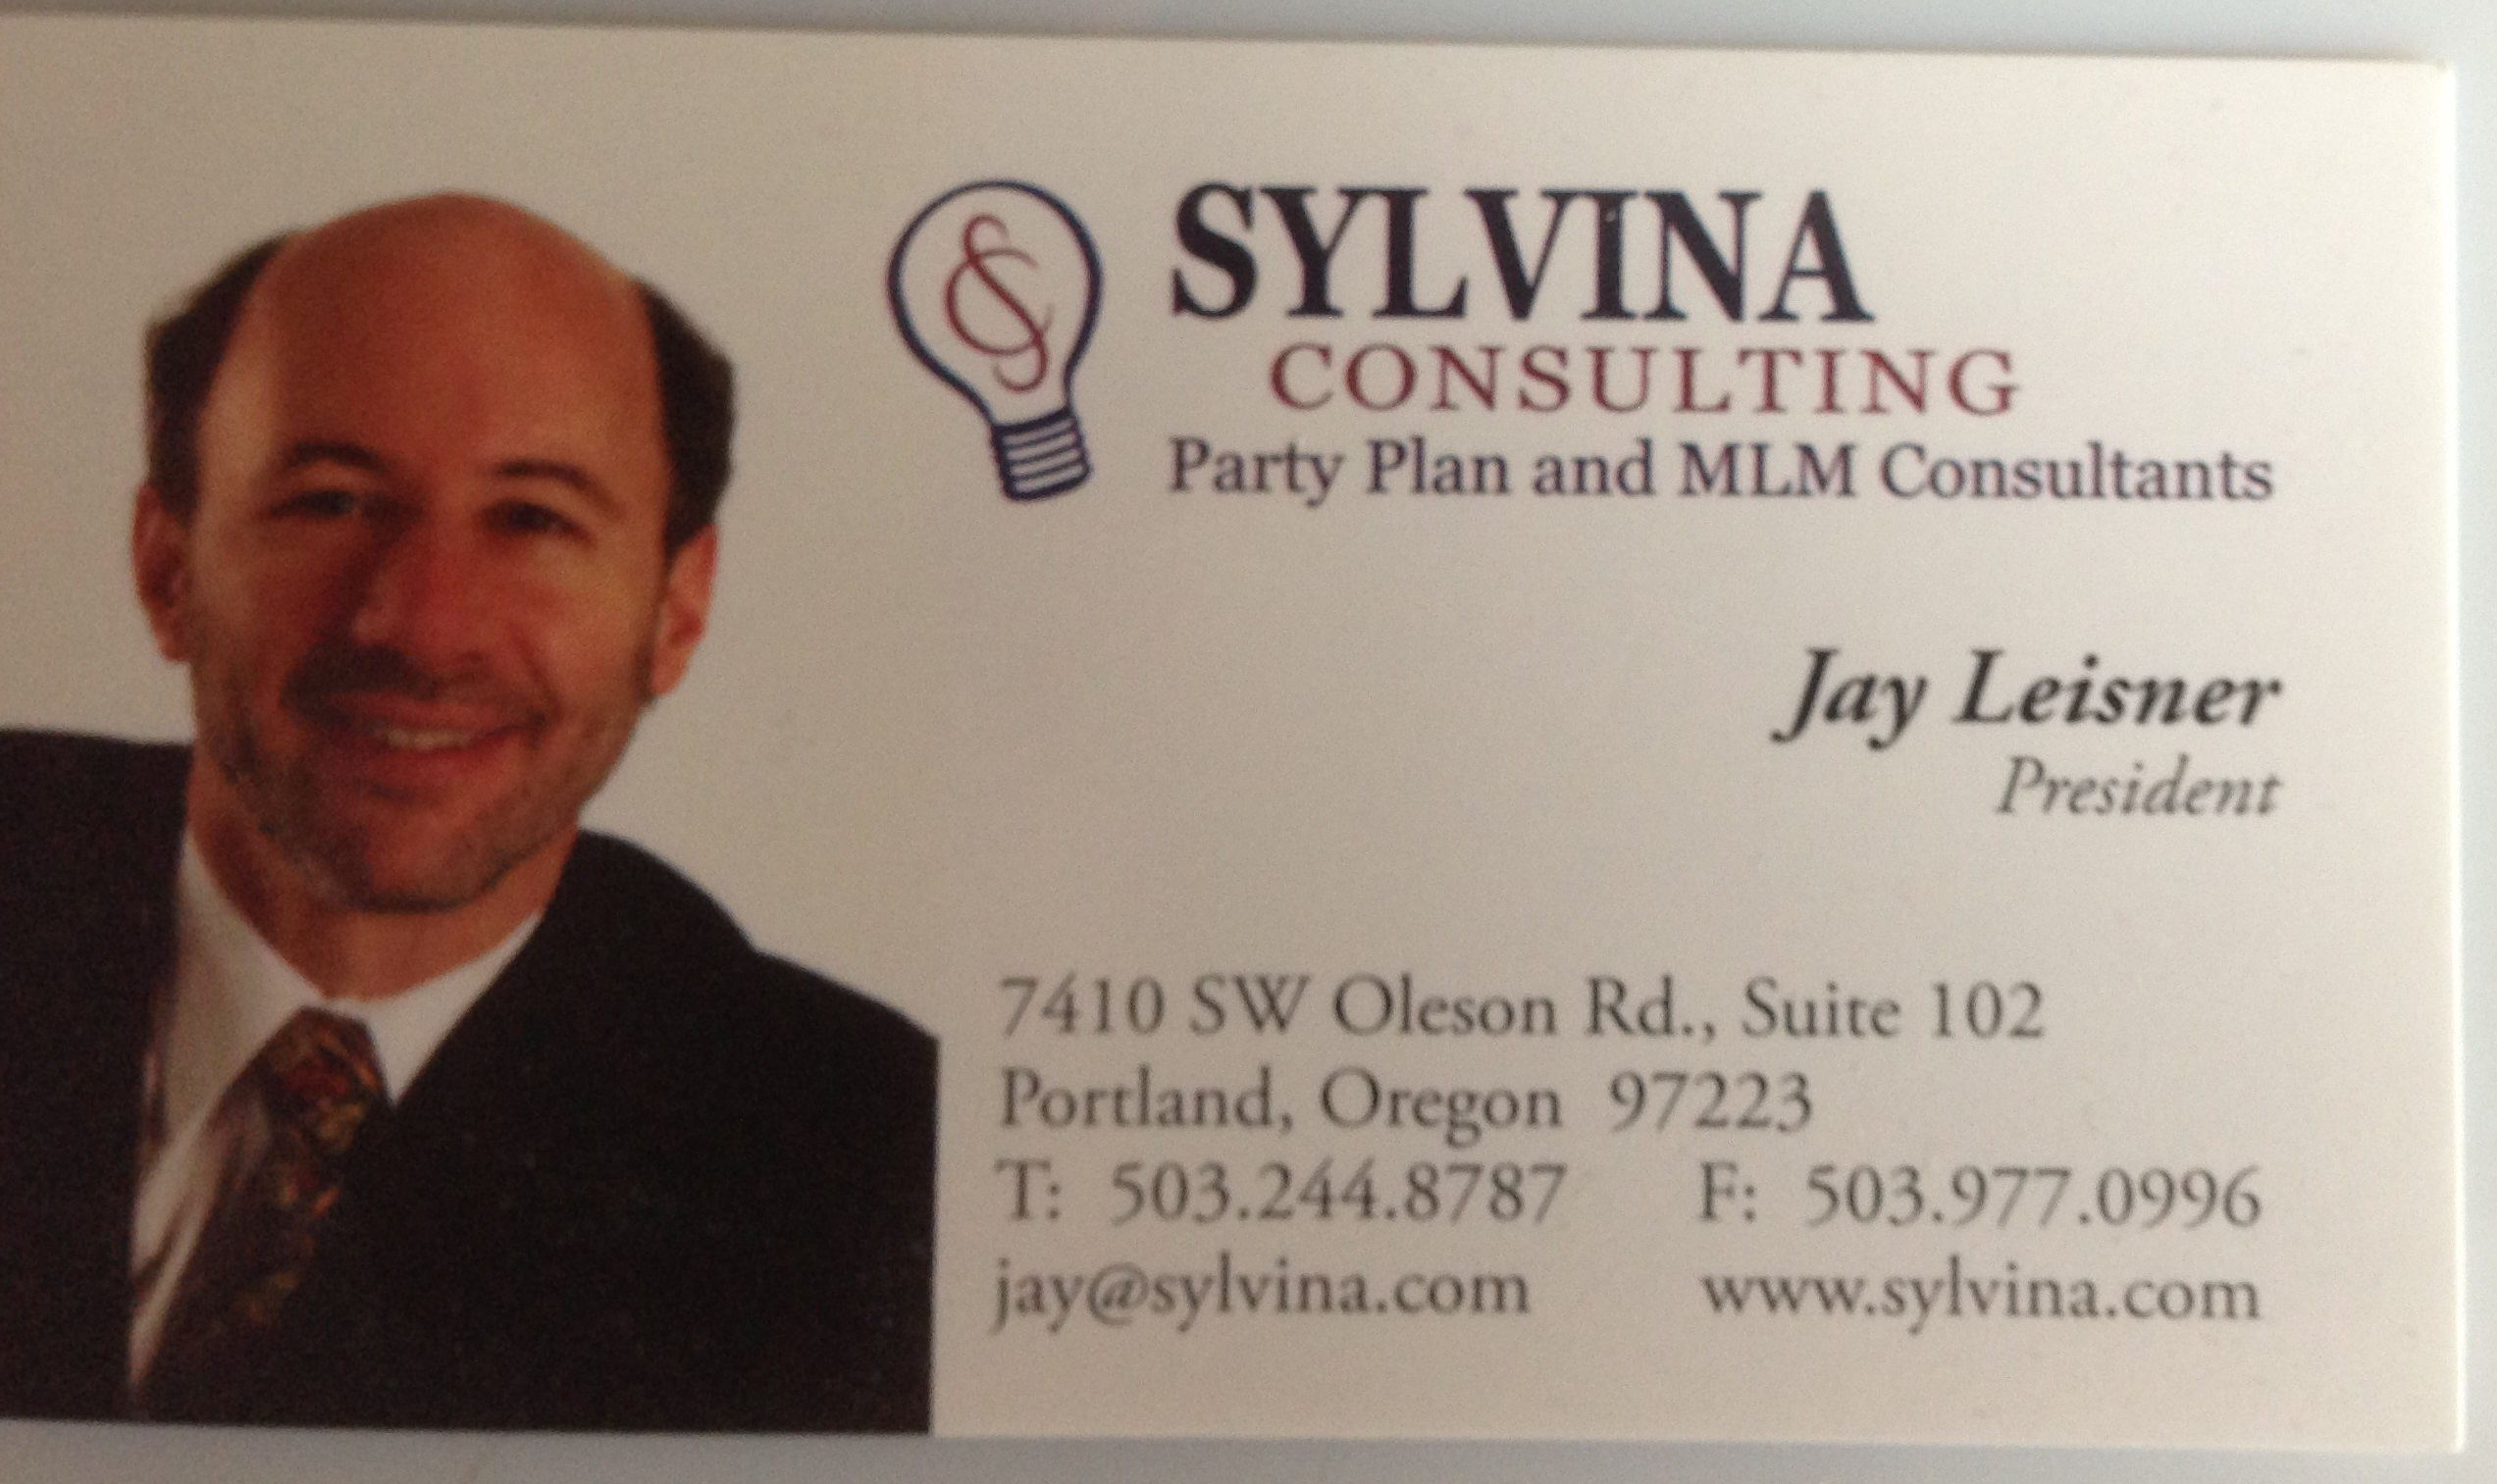 Are Business Cards Still Relevant? - Sylvina Consulting